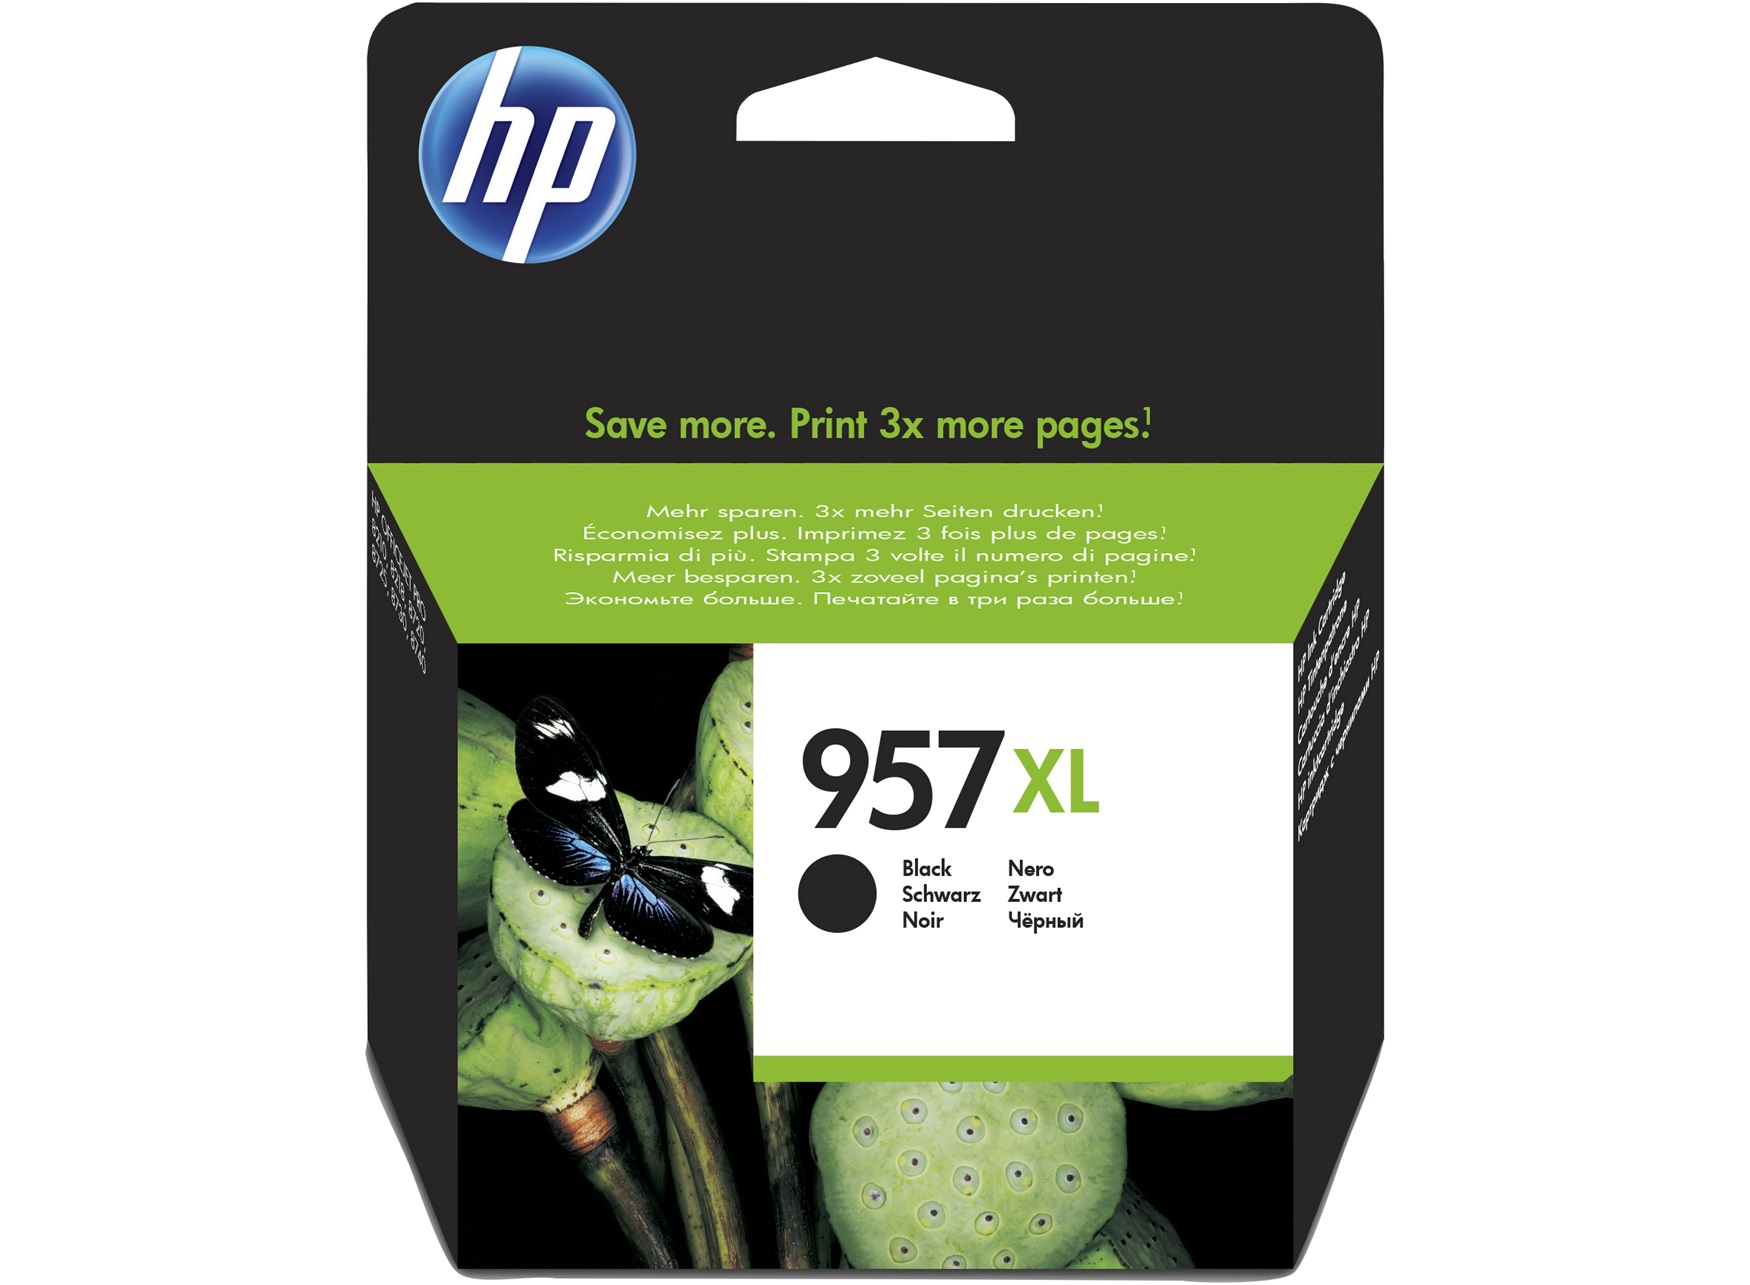 HP 957XL Black Original Ink Cartridge 63.5ml 3000pages Black ink cartridge